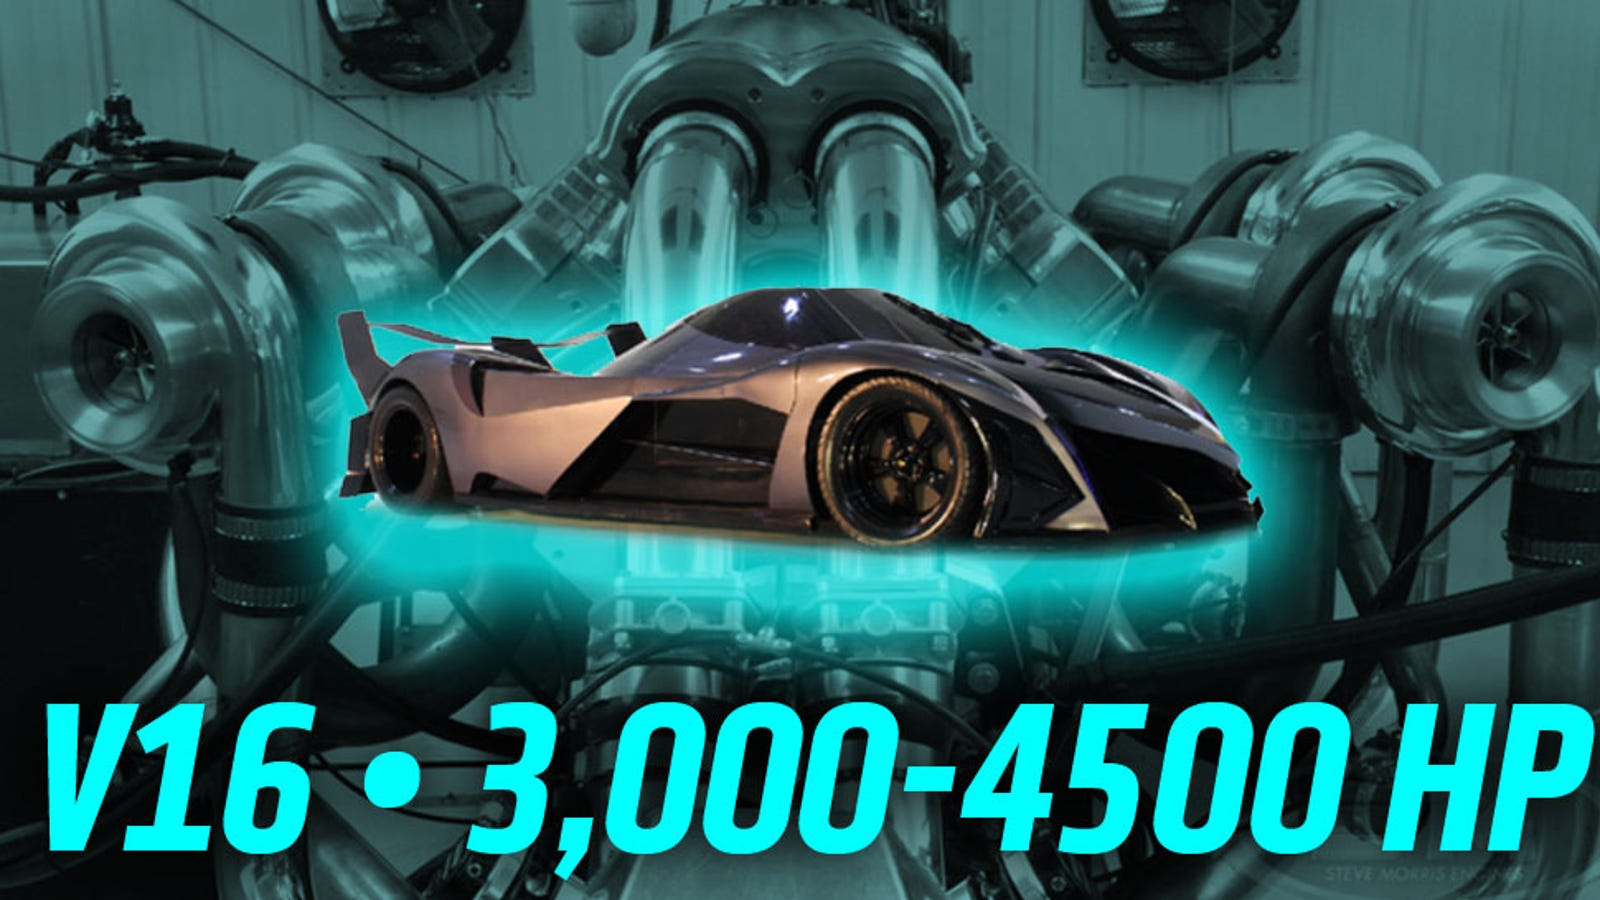 The Devel Sixteen's Insane 3,000+ HP V16 Engine Seems To ...